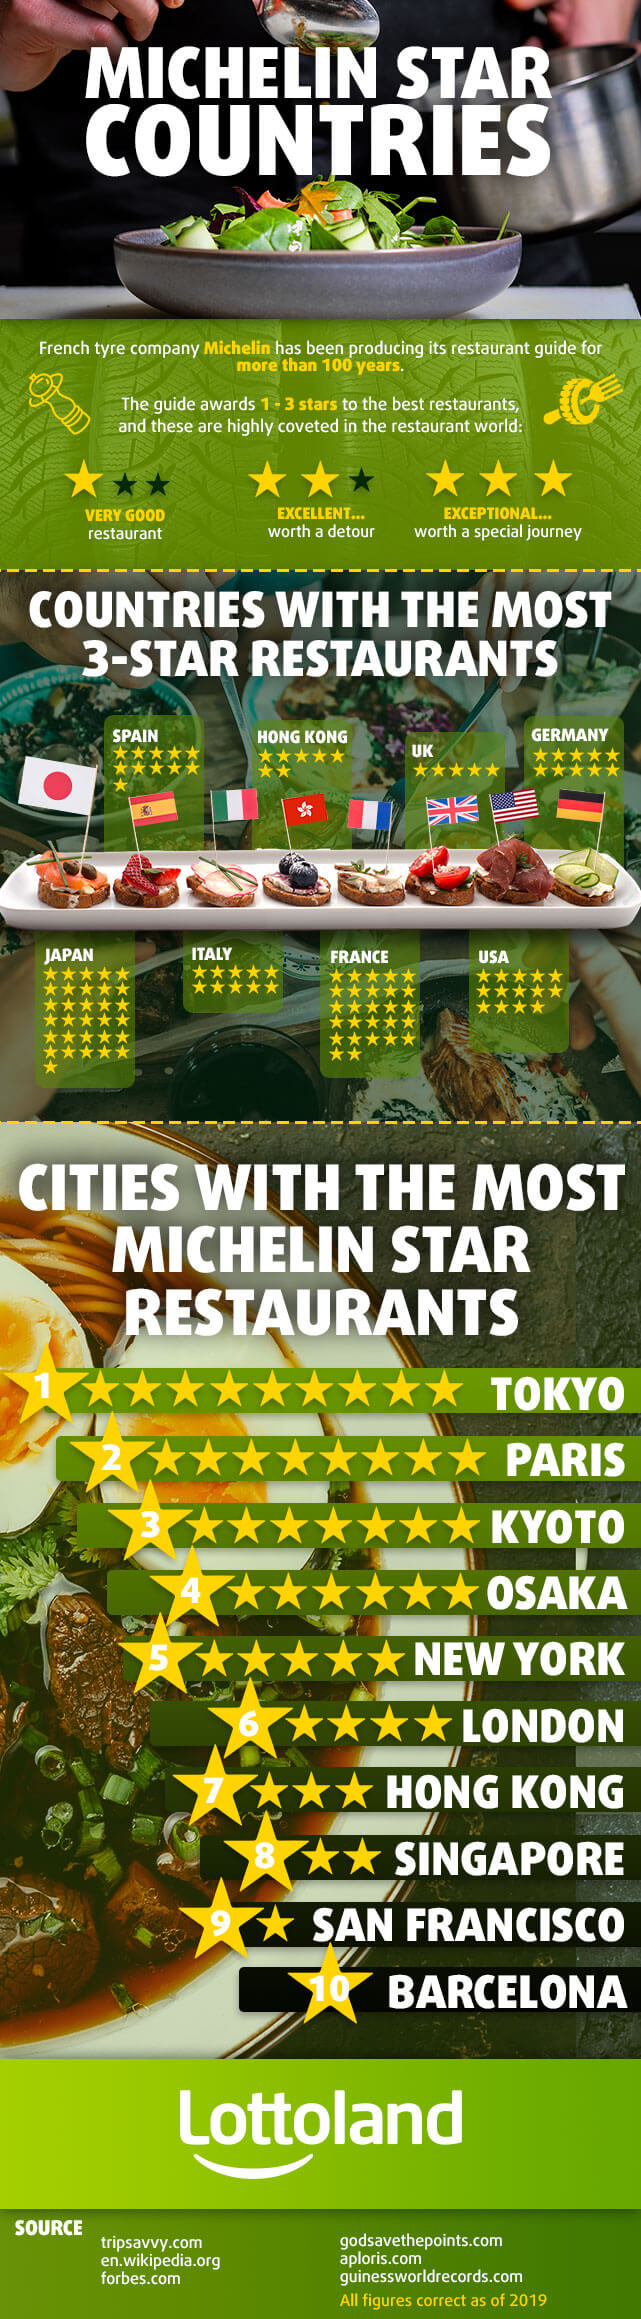 Infographic showing countries and cities around the world with the most Michelin starred restaurants